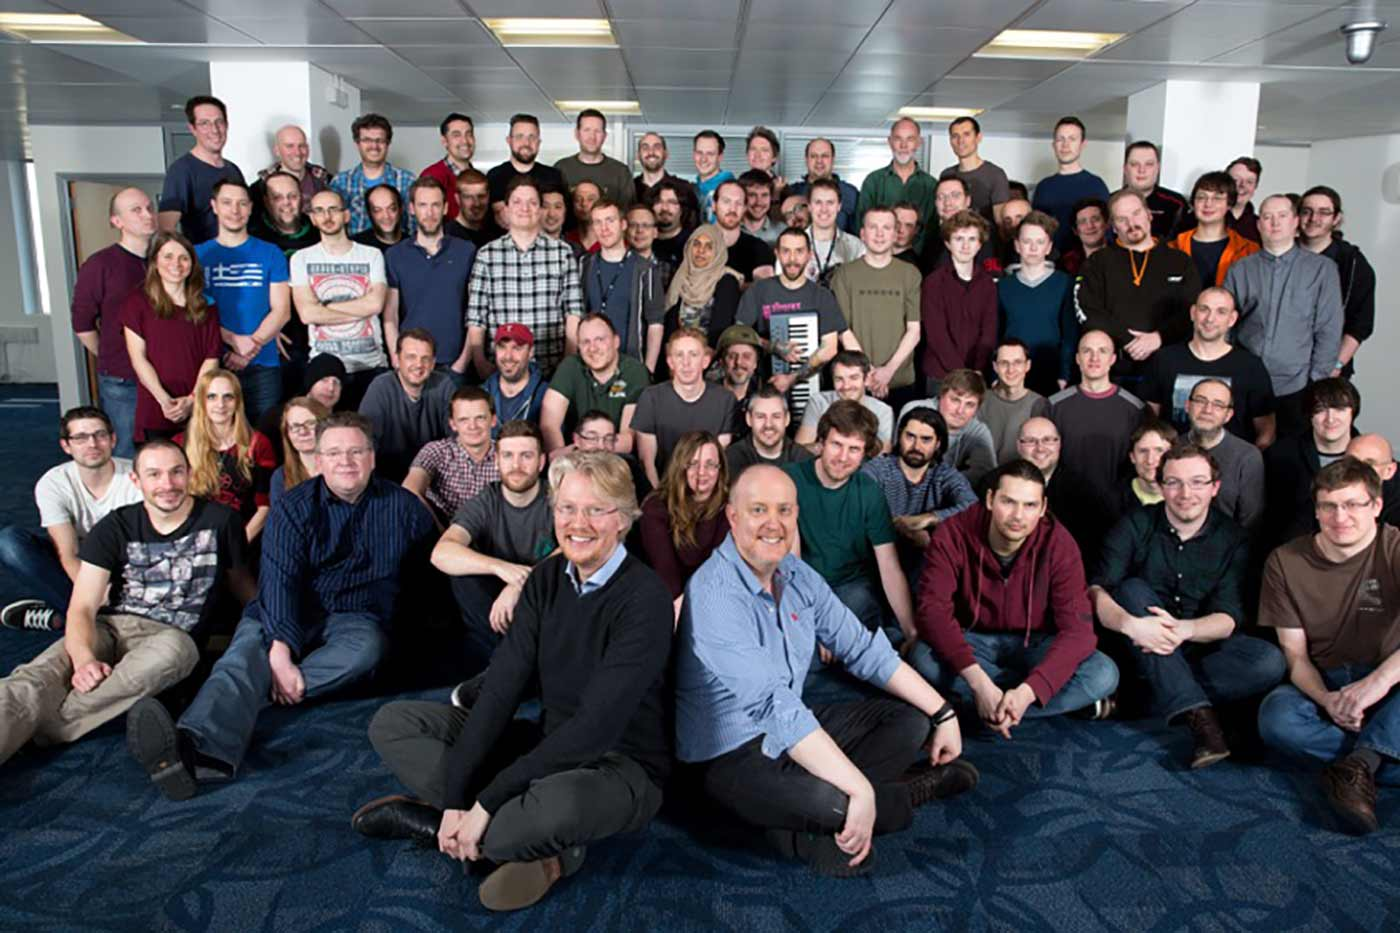 Codemasters are moving to the Custard Factory, Digbeth, Birmingham. Pictured, Lucan Gray (Custard Factory), seated foreground left with Nick Craig (Studio Manager) seated right, surrounded by the staff of Codemasters.